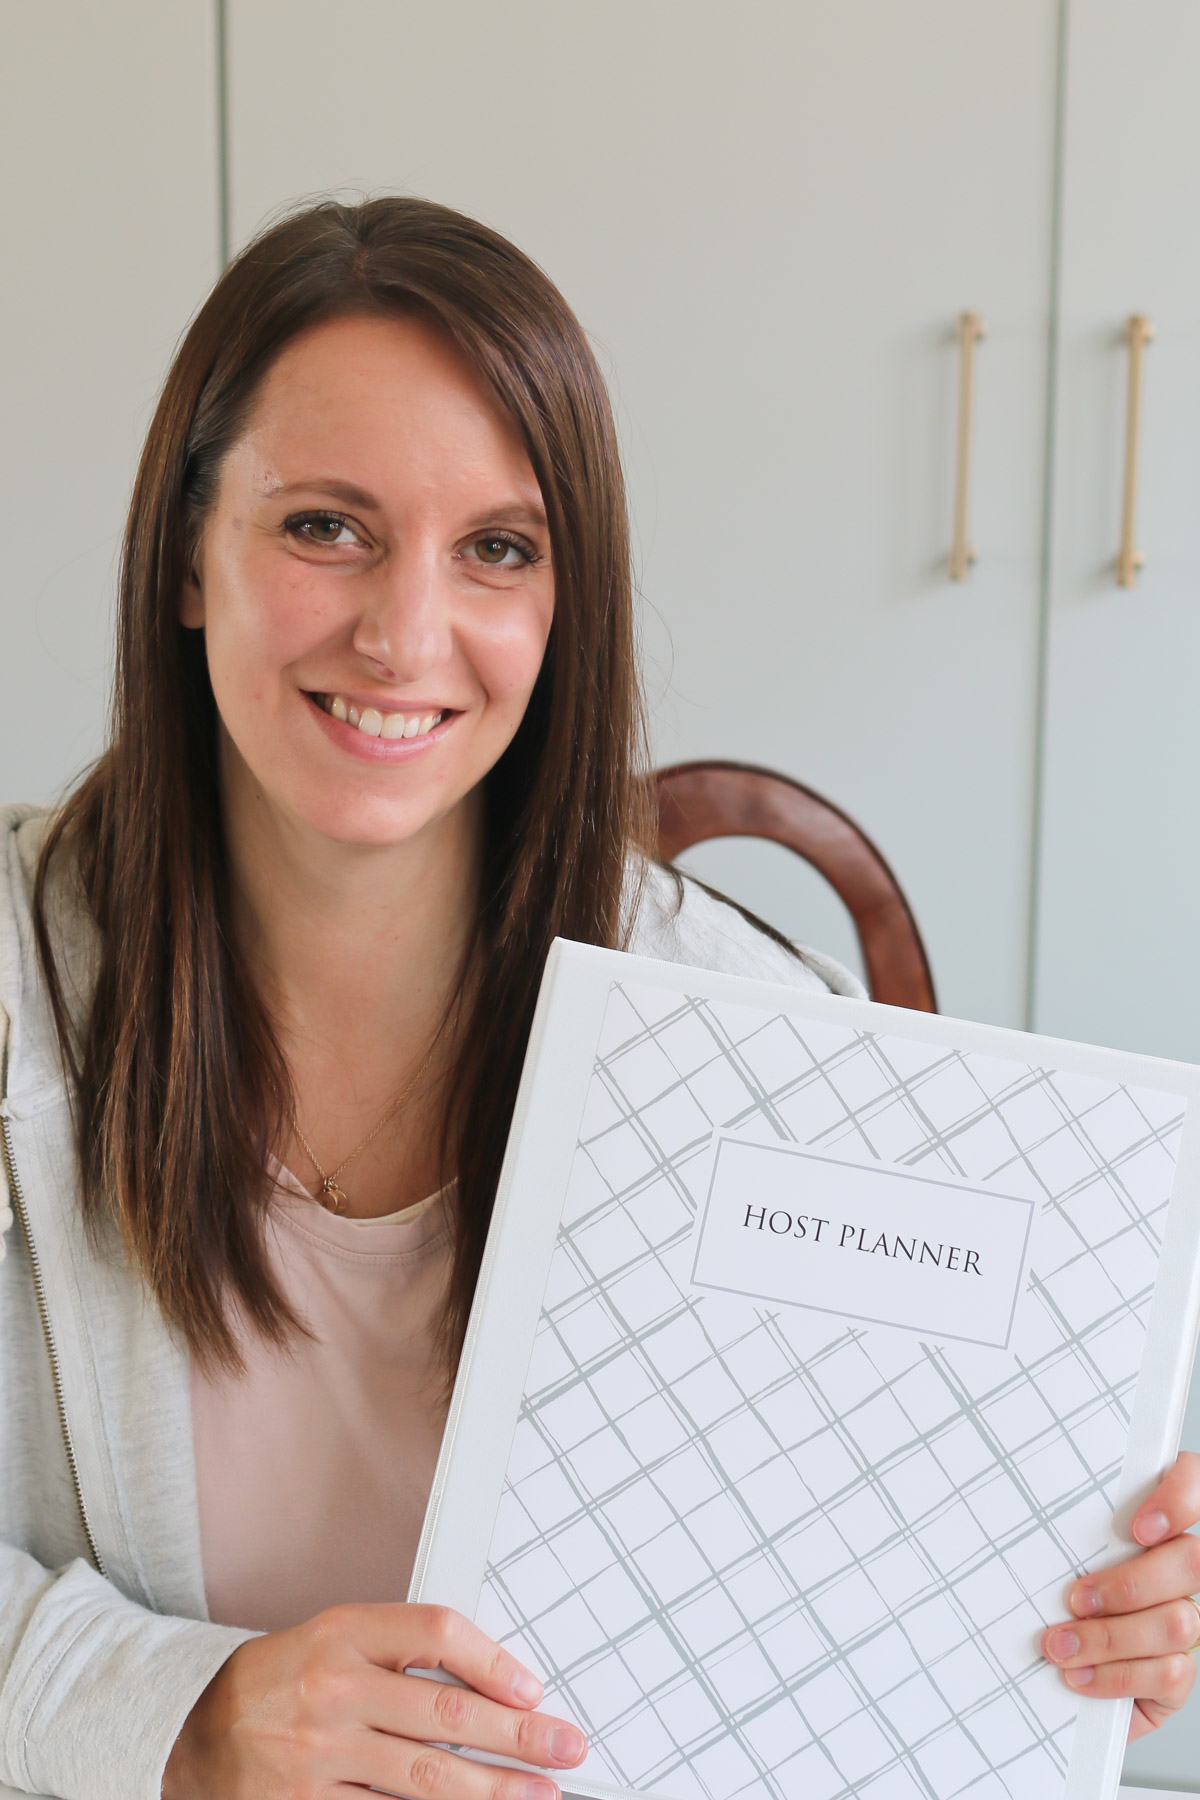 Cami holding a printed version of the Host Planner in a binder